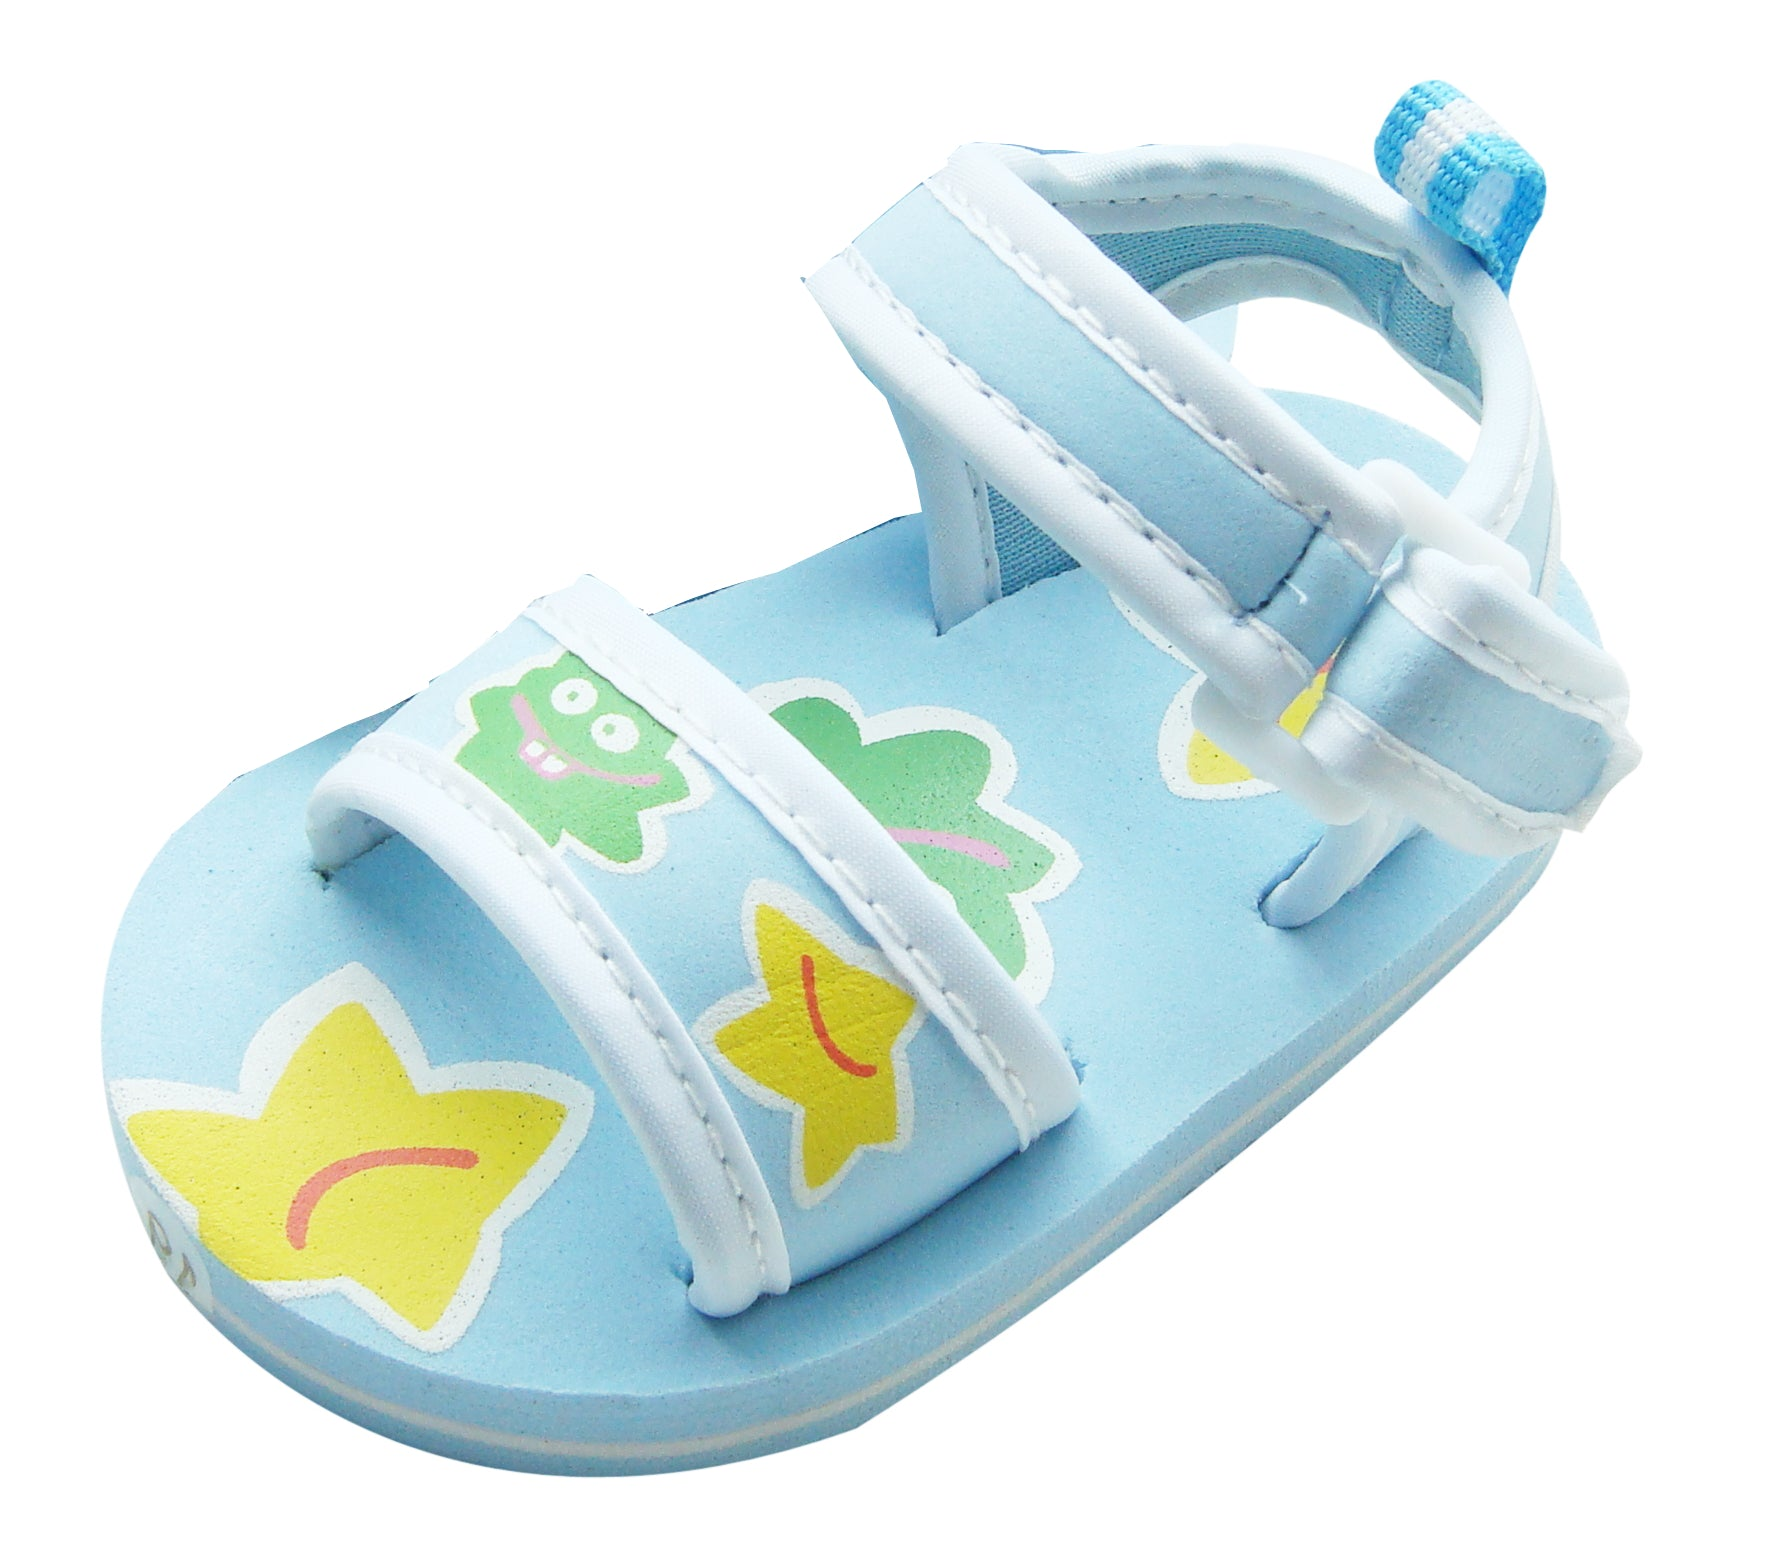 MABINI Bright Smiley Blob Face Summer Baby Eva Sandals